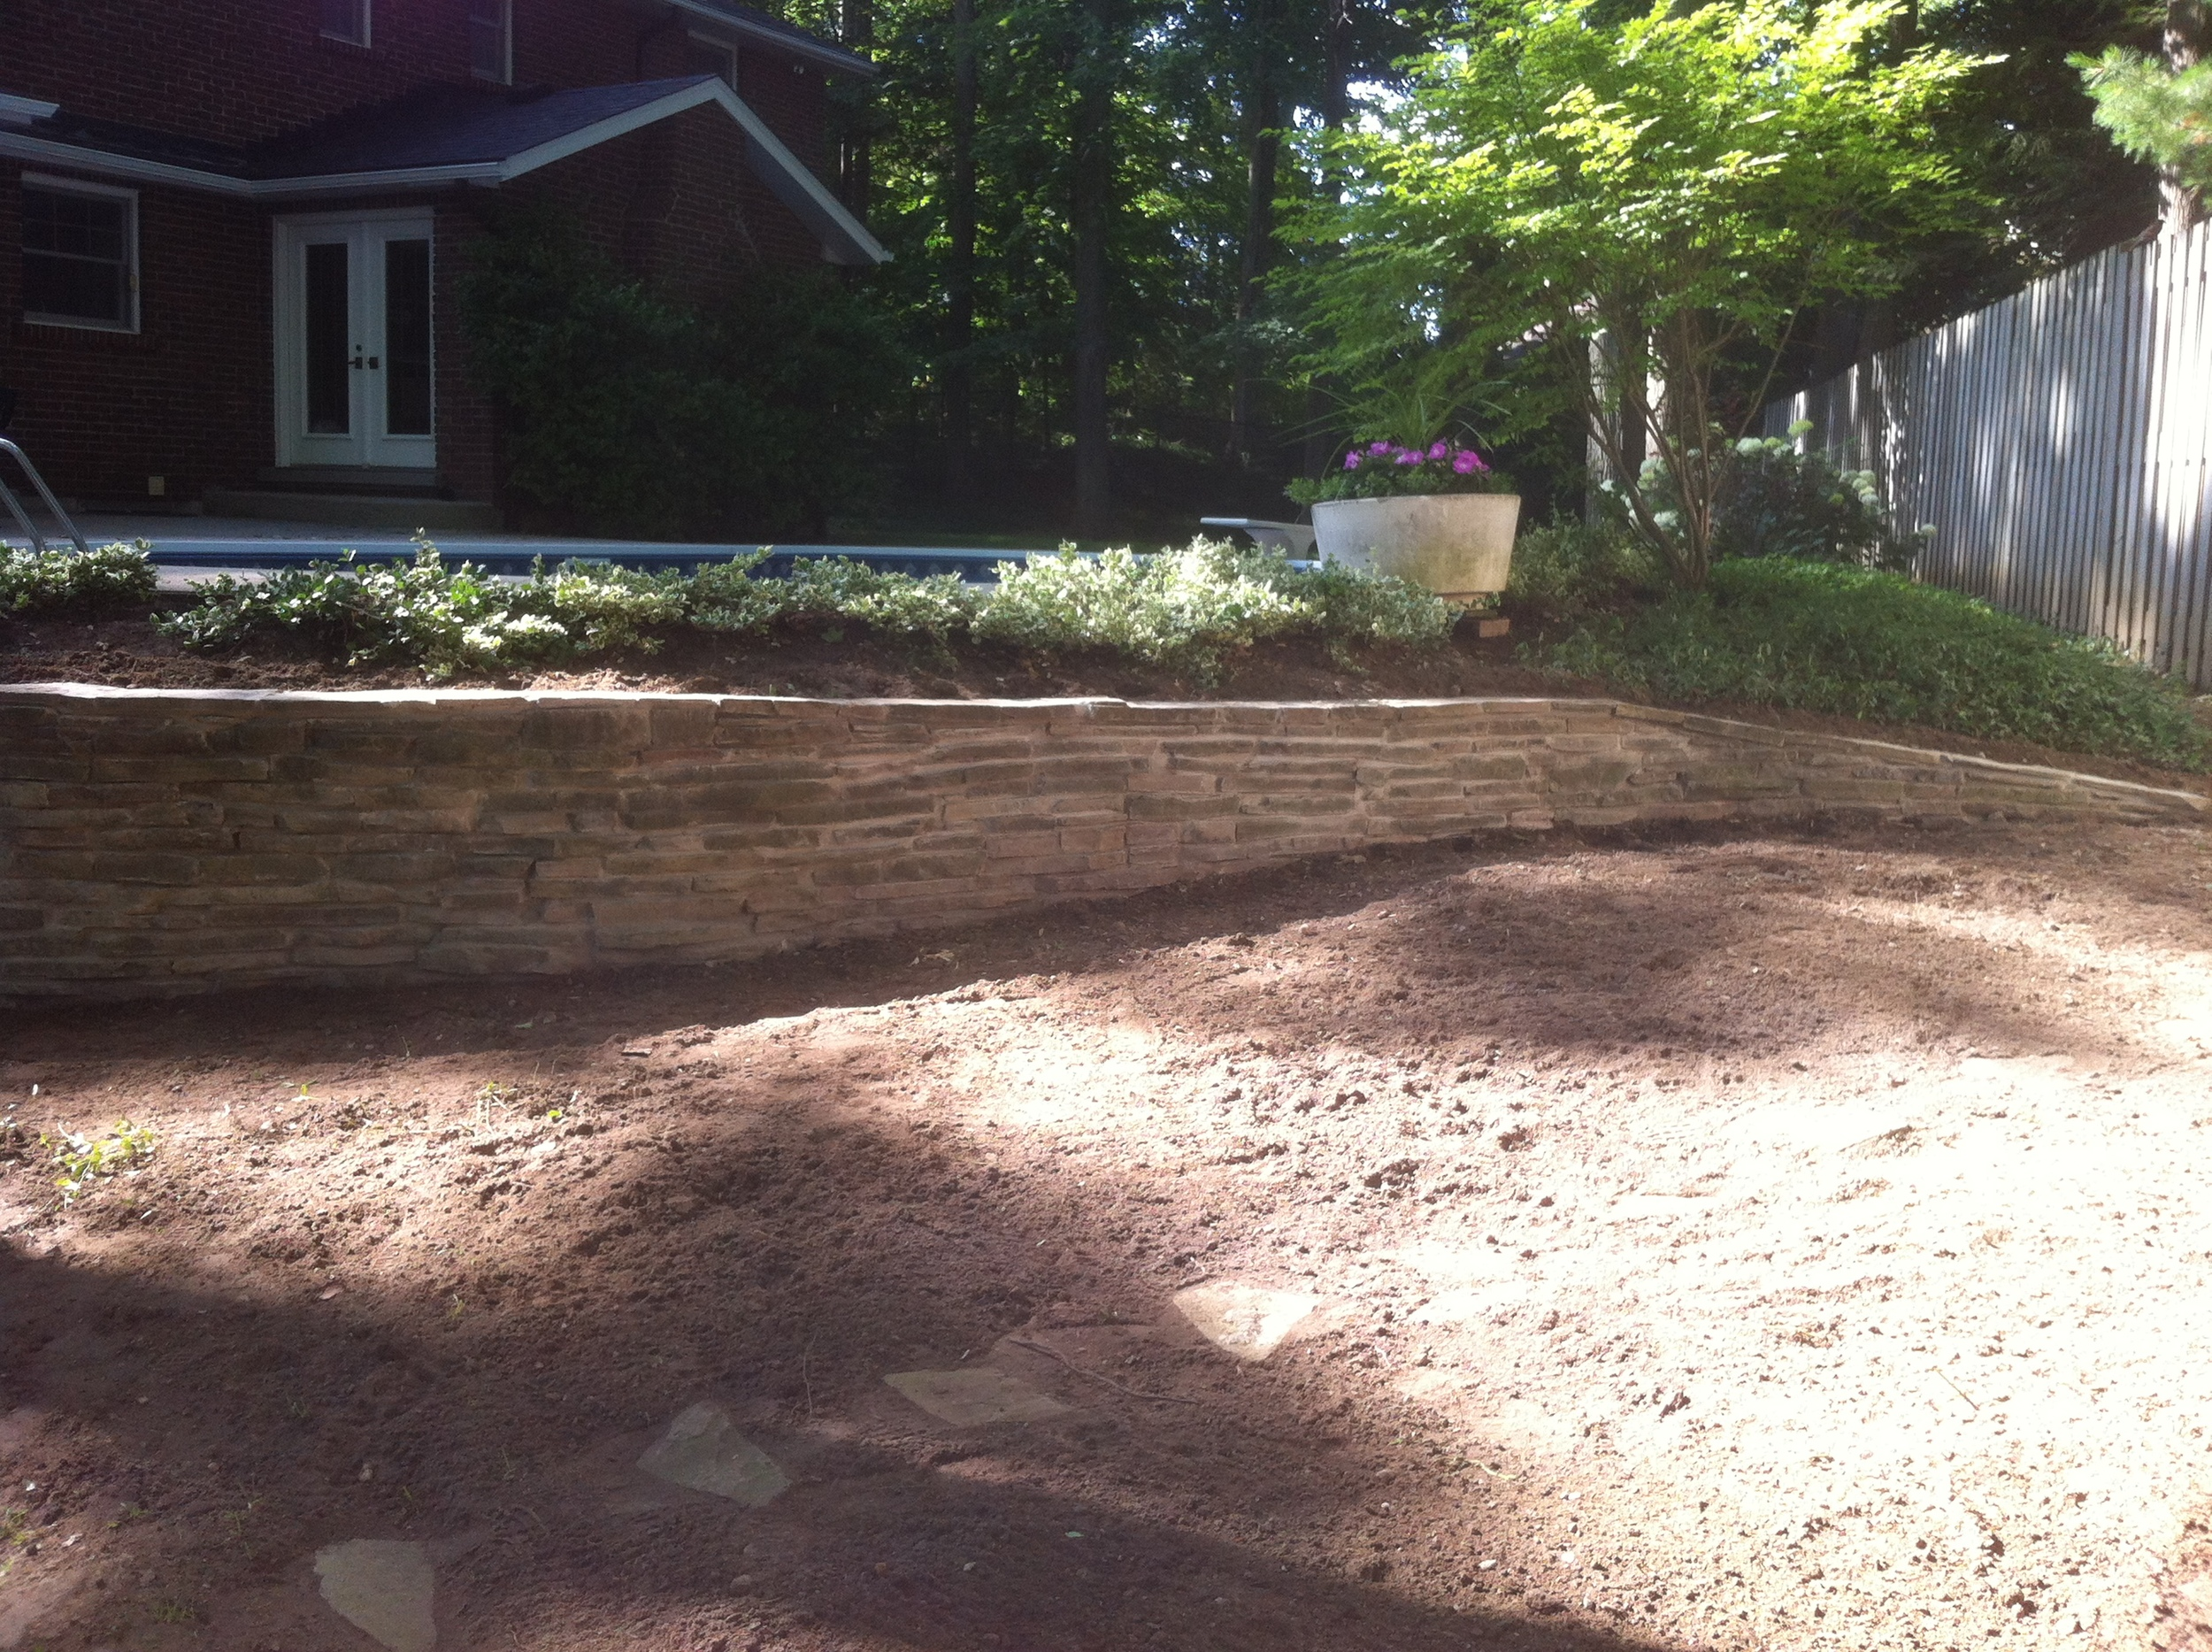 Retaining Wall Build And Maintenance In Kitchener-Waterloo